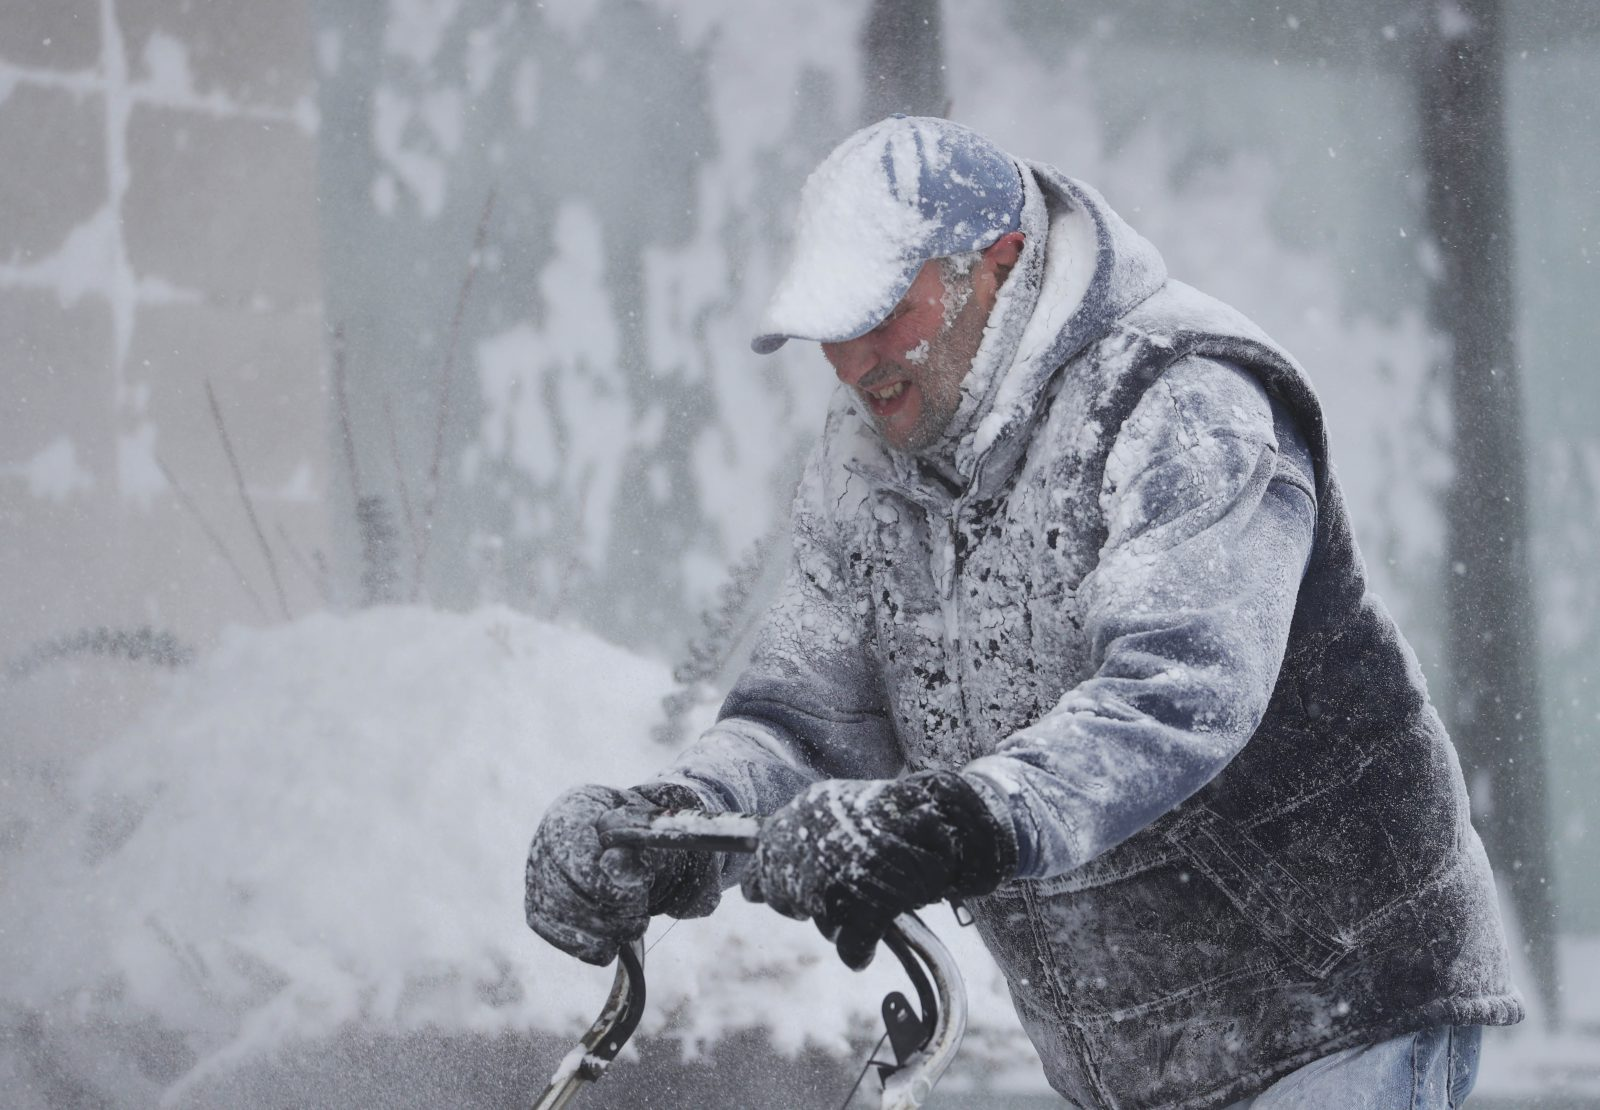 Buffalo hits 100 inches of snow so far this winter - with more to come